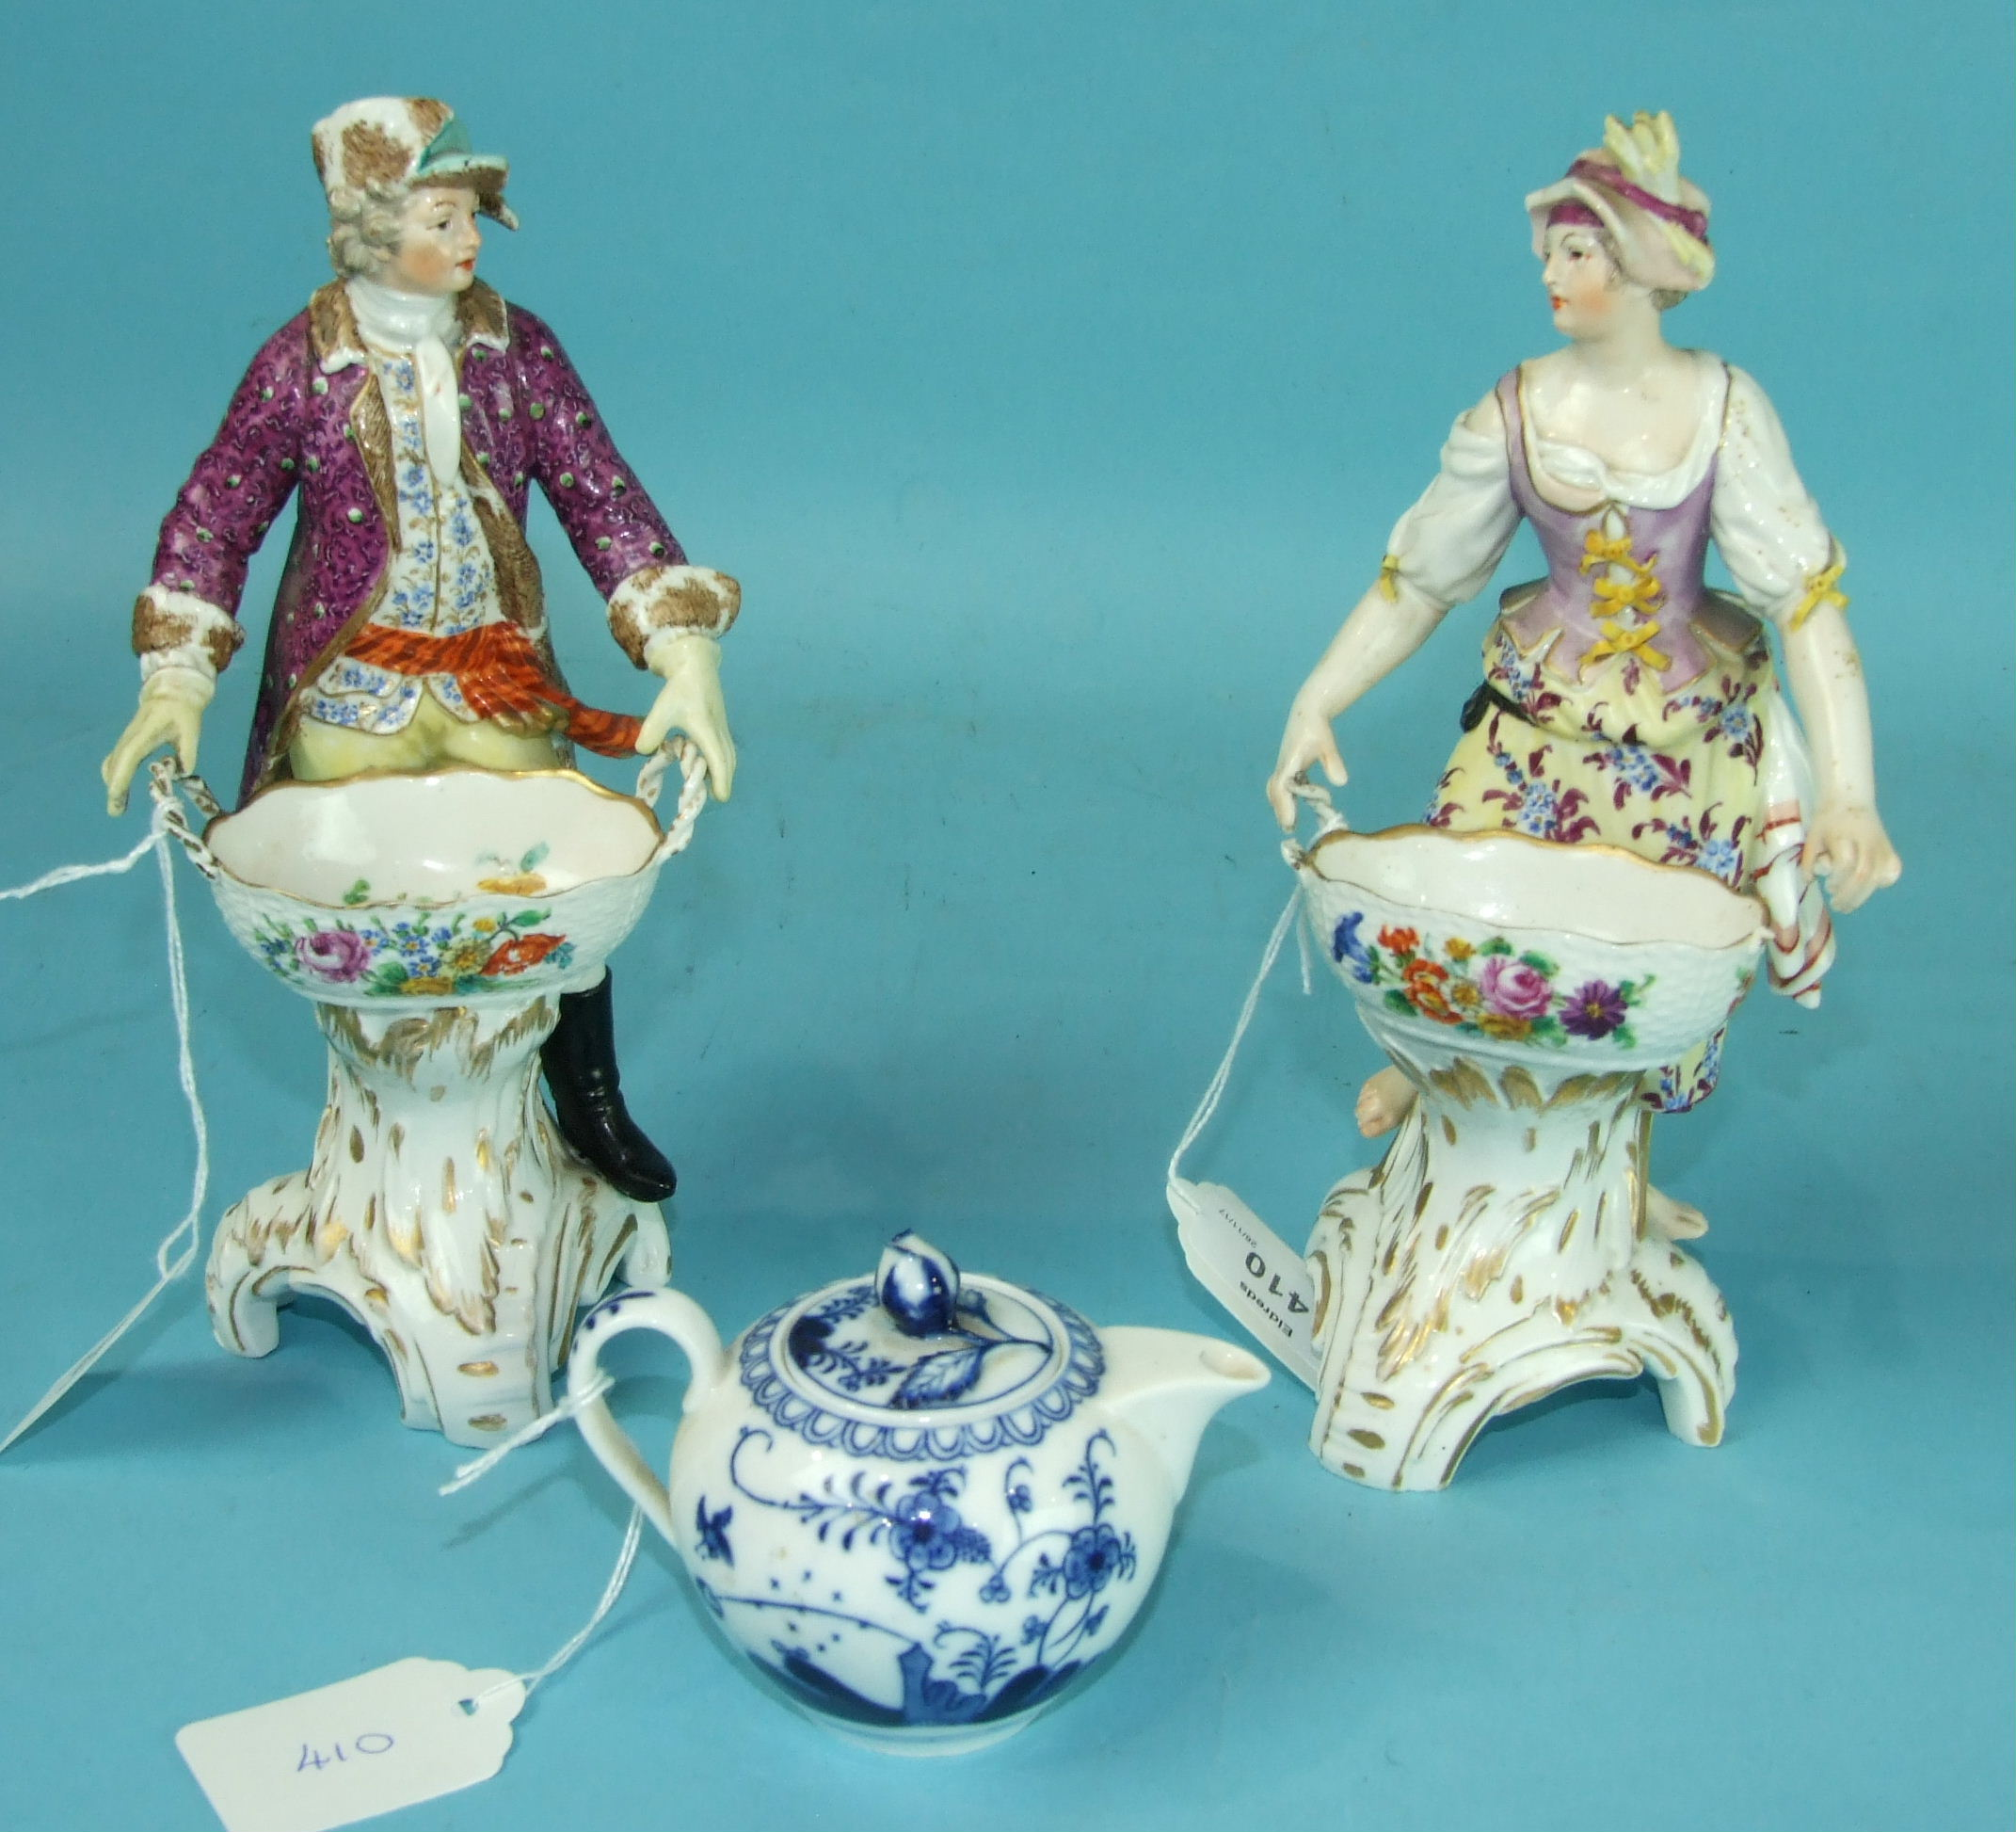 Lot 410 - A pair of Berlin porcelain figures of a lady and her companion, (a/f) and a small Meissen blue and